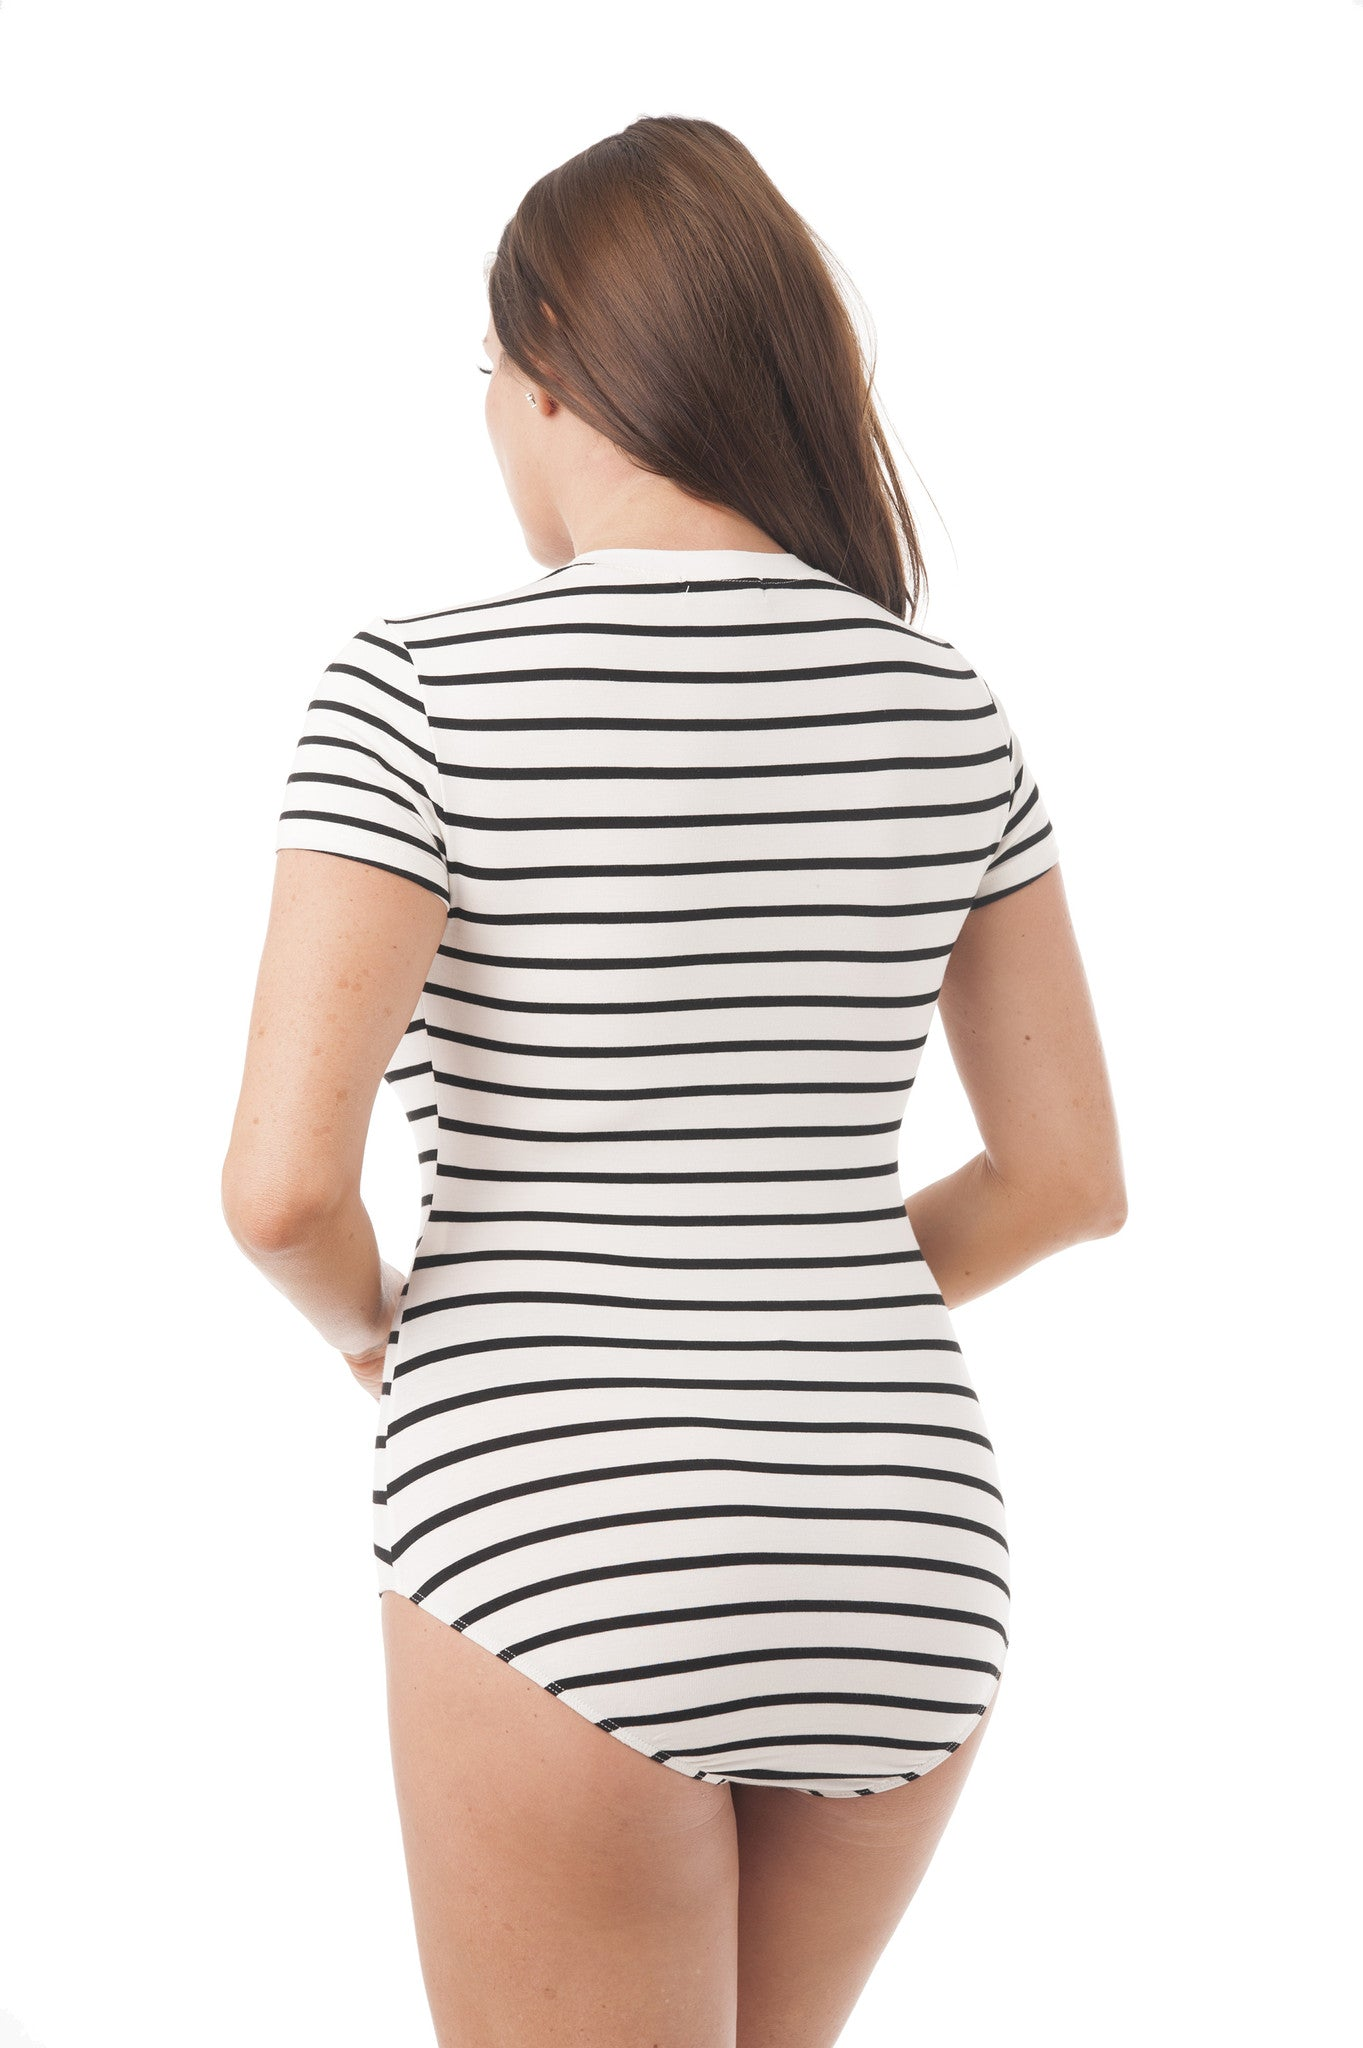 Crew Neck Short Sleeve Striped Bodysuit